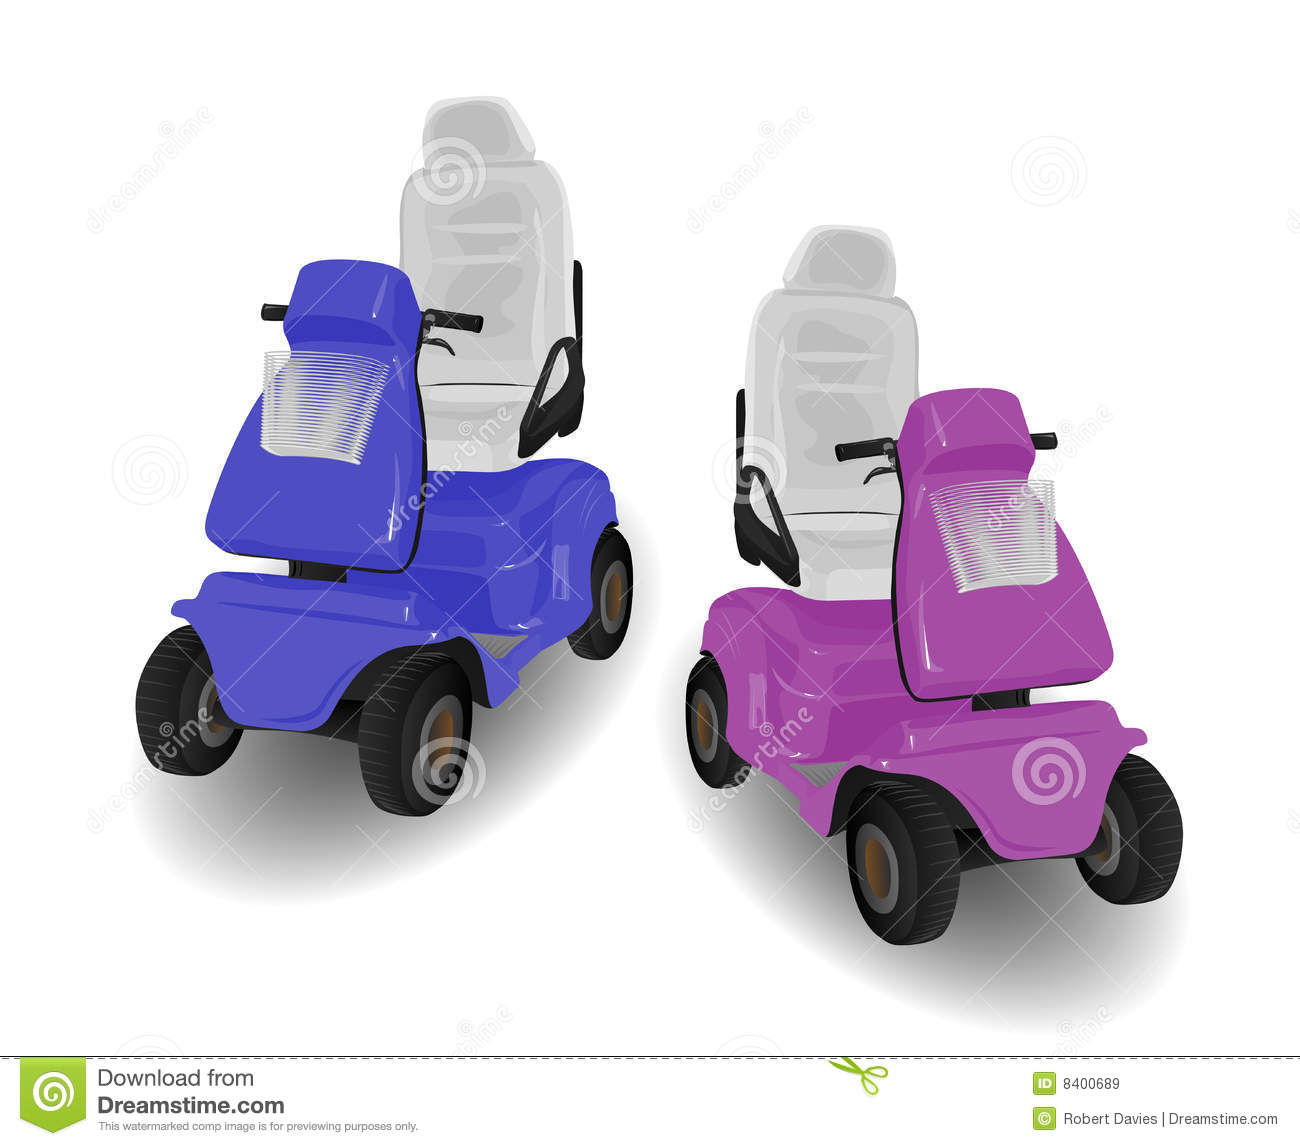 Two mobility scooter illustrations royalty free stock images image